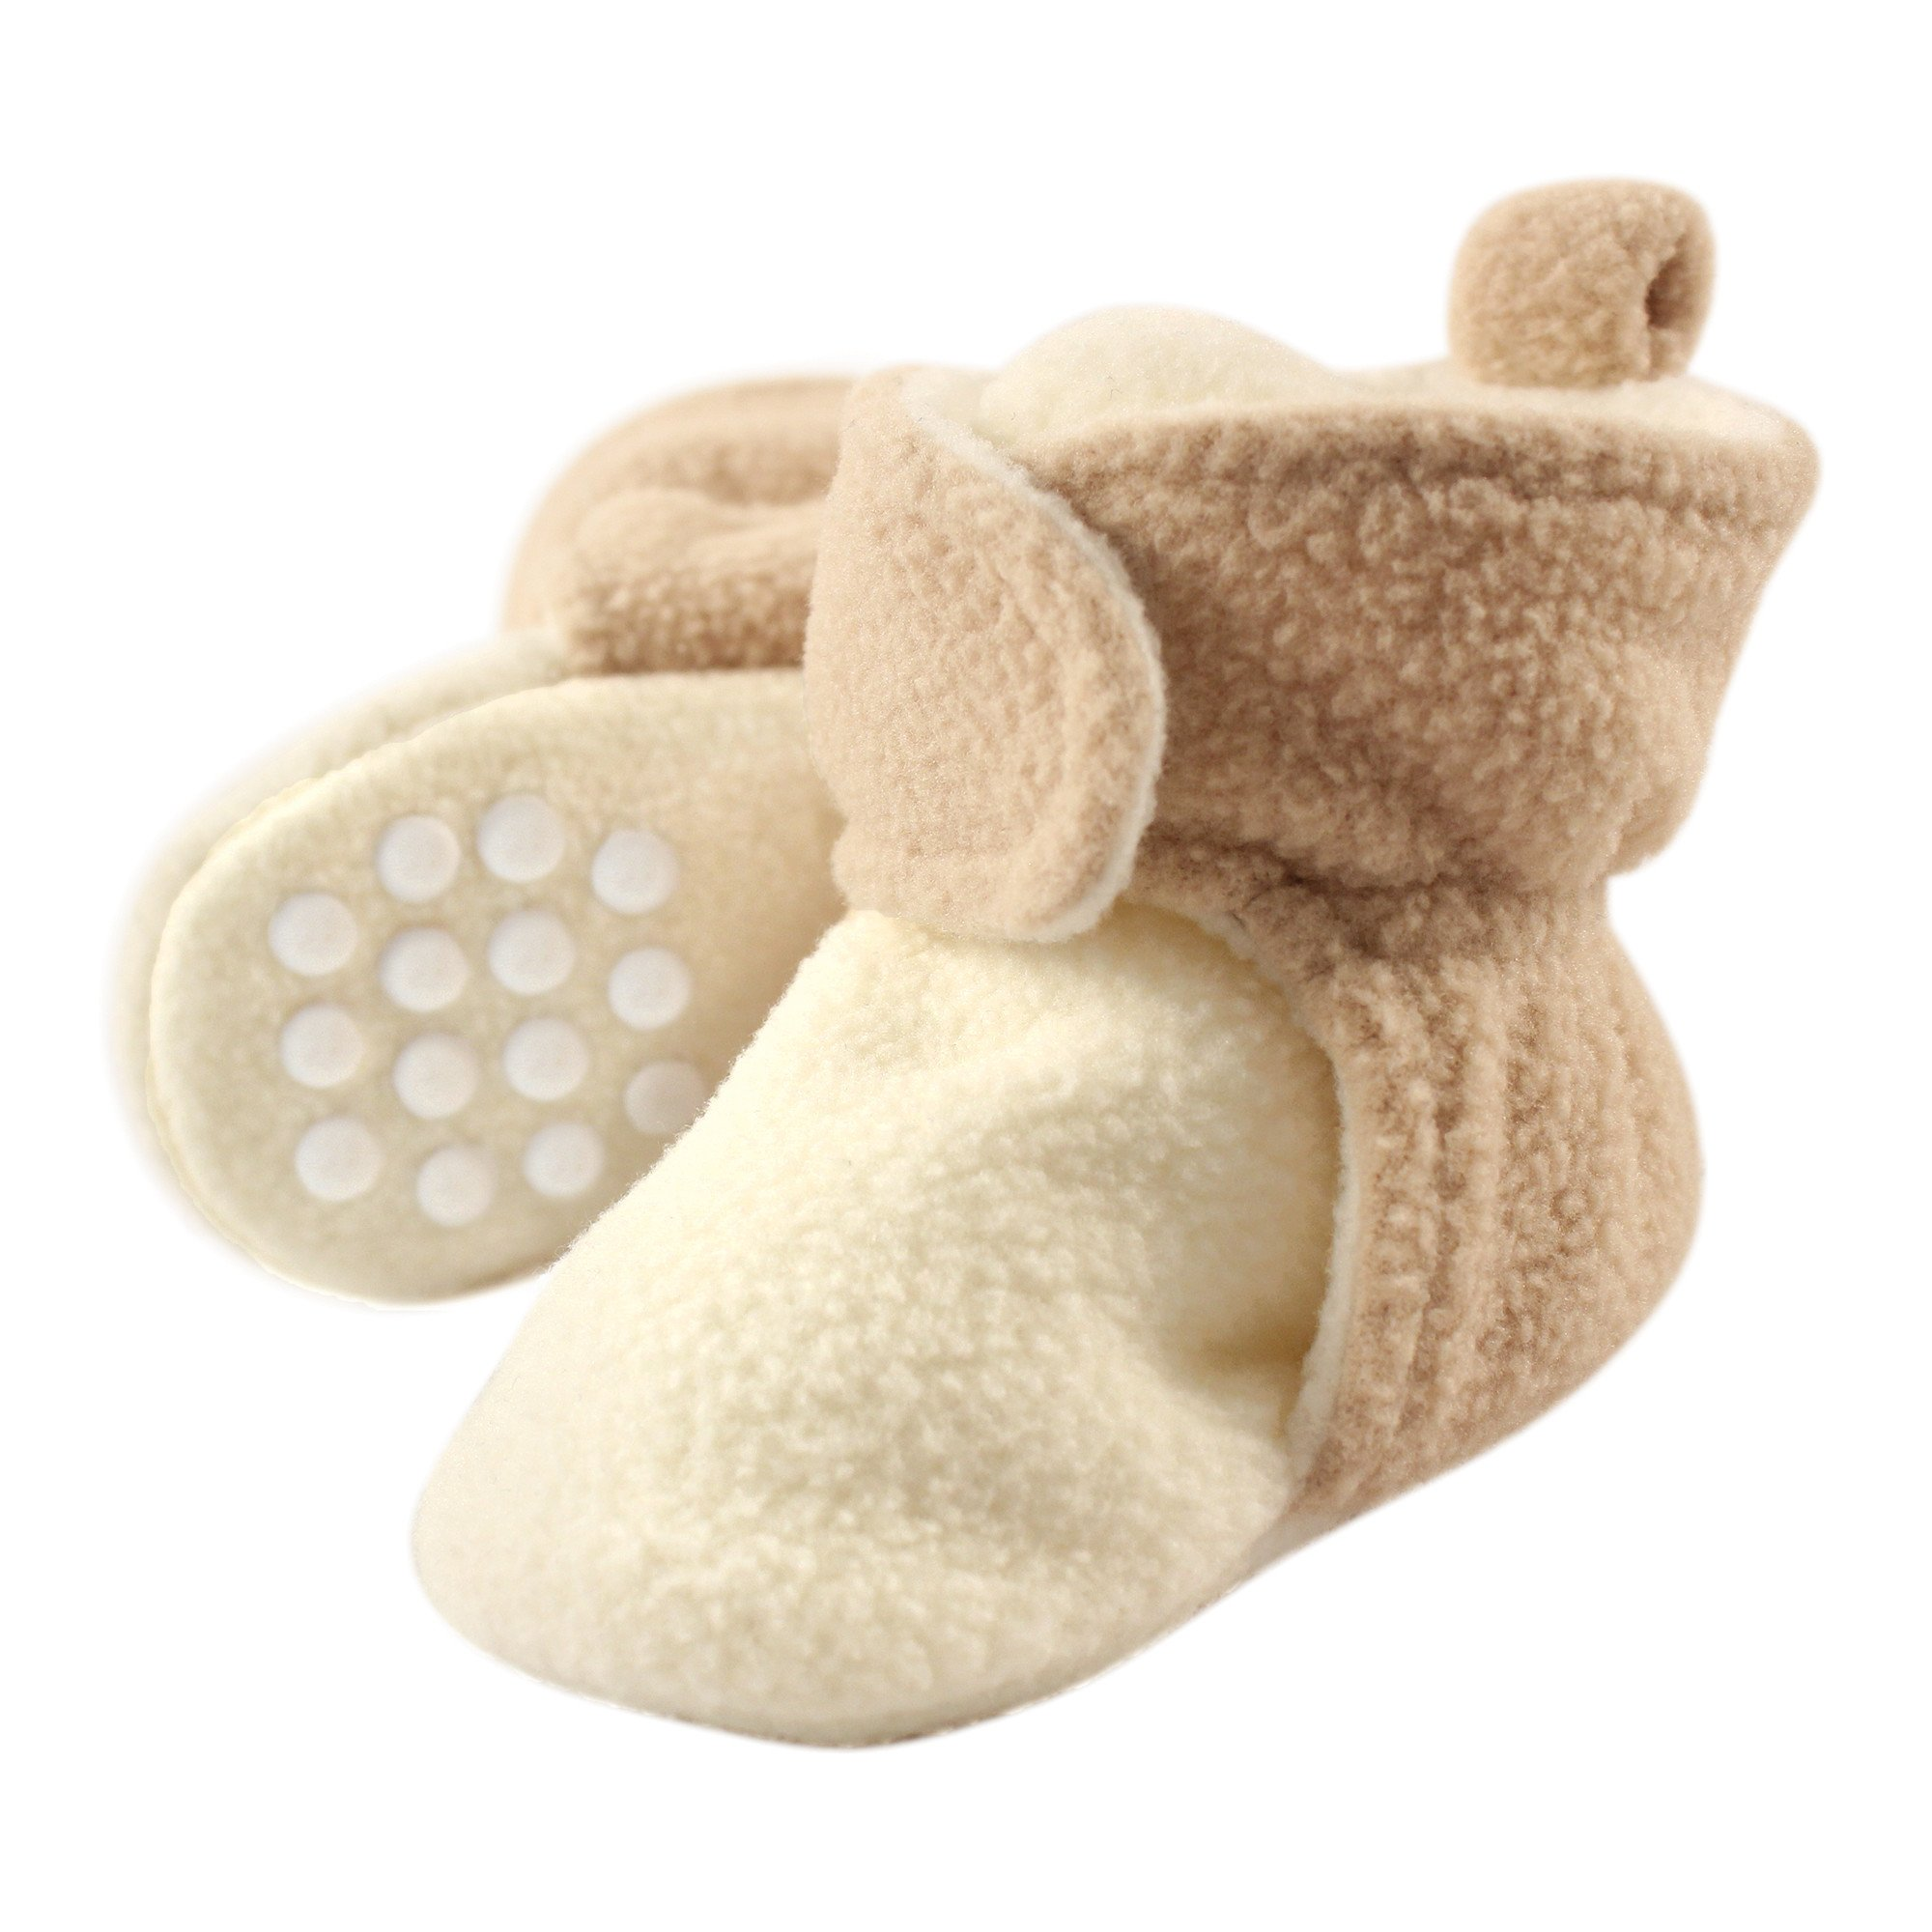 Luvable Friends Baby Cozy Fleece Booties with Non Skid Bottom, Cream/Tan, 12-18 Months